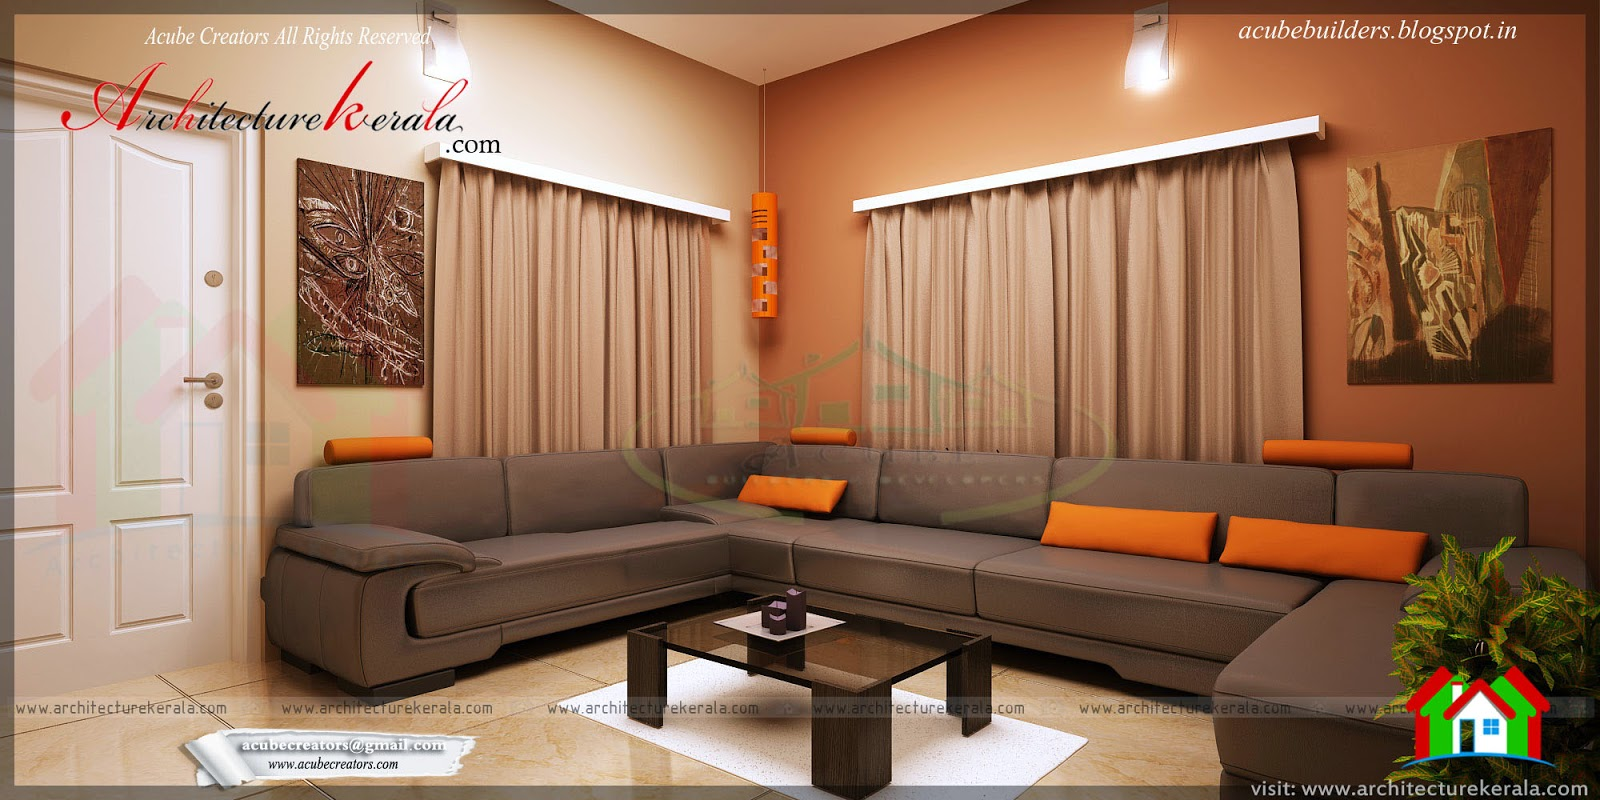 Drawing room interior design architecture kerala Room sketches interior design